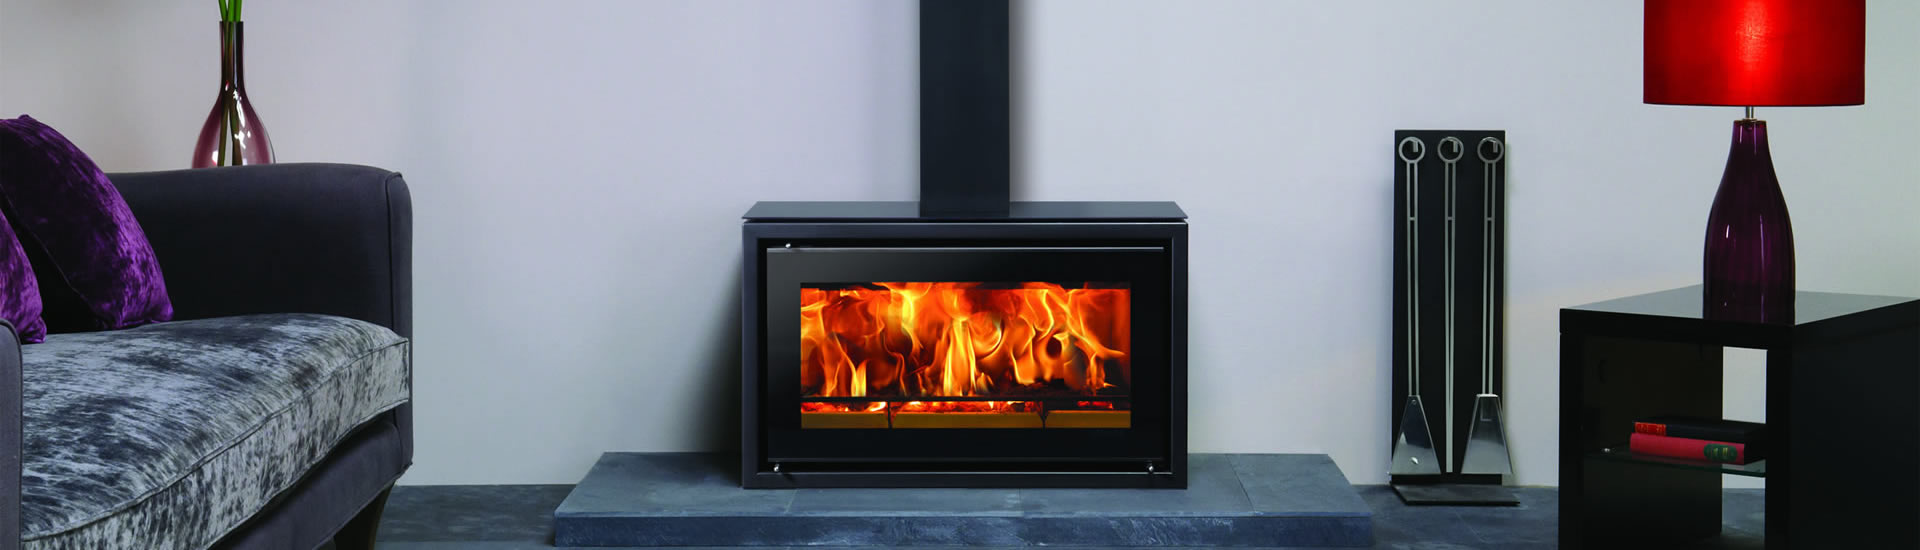 <span class='title t1'>Fires &amp; Stoves</span><span class='text'>Wood, multi-fuel<br>and gas stoves</span>